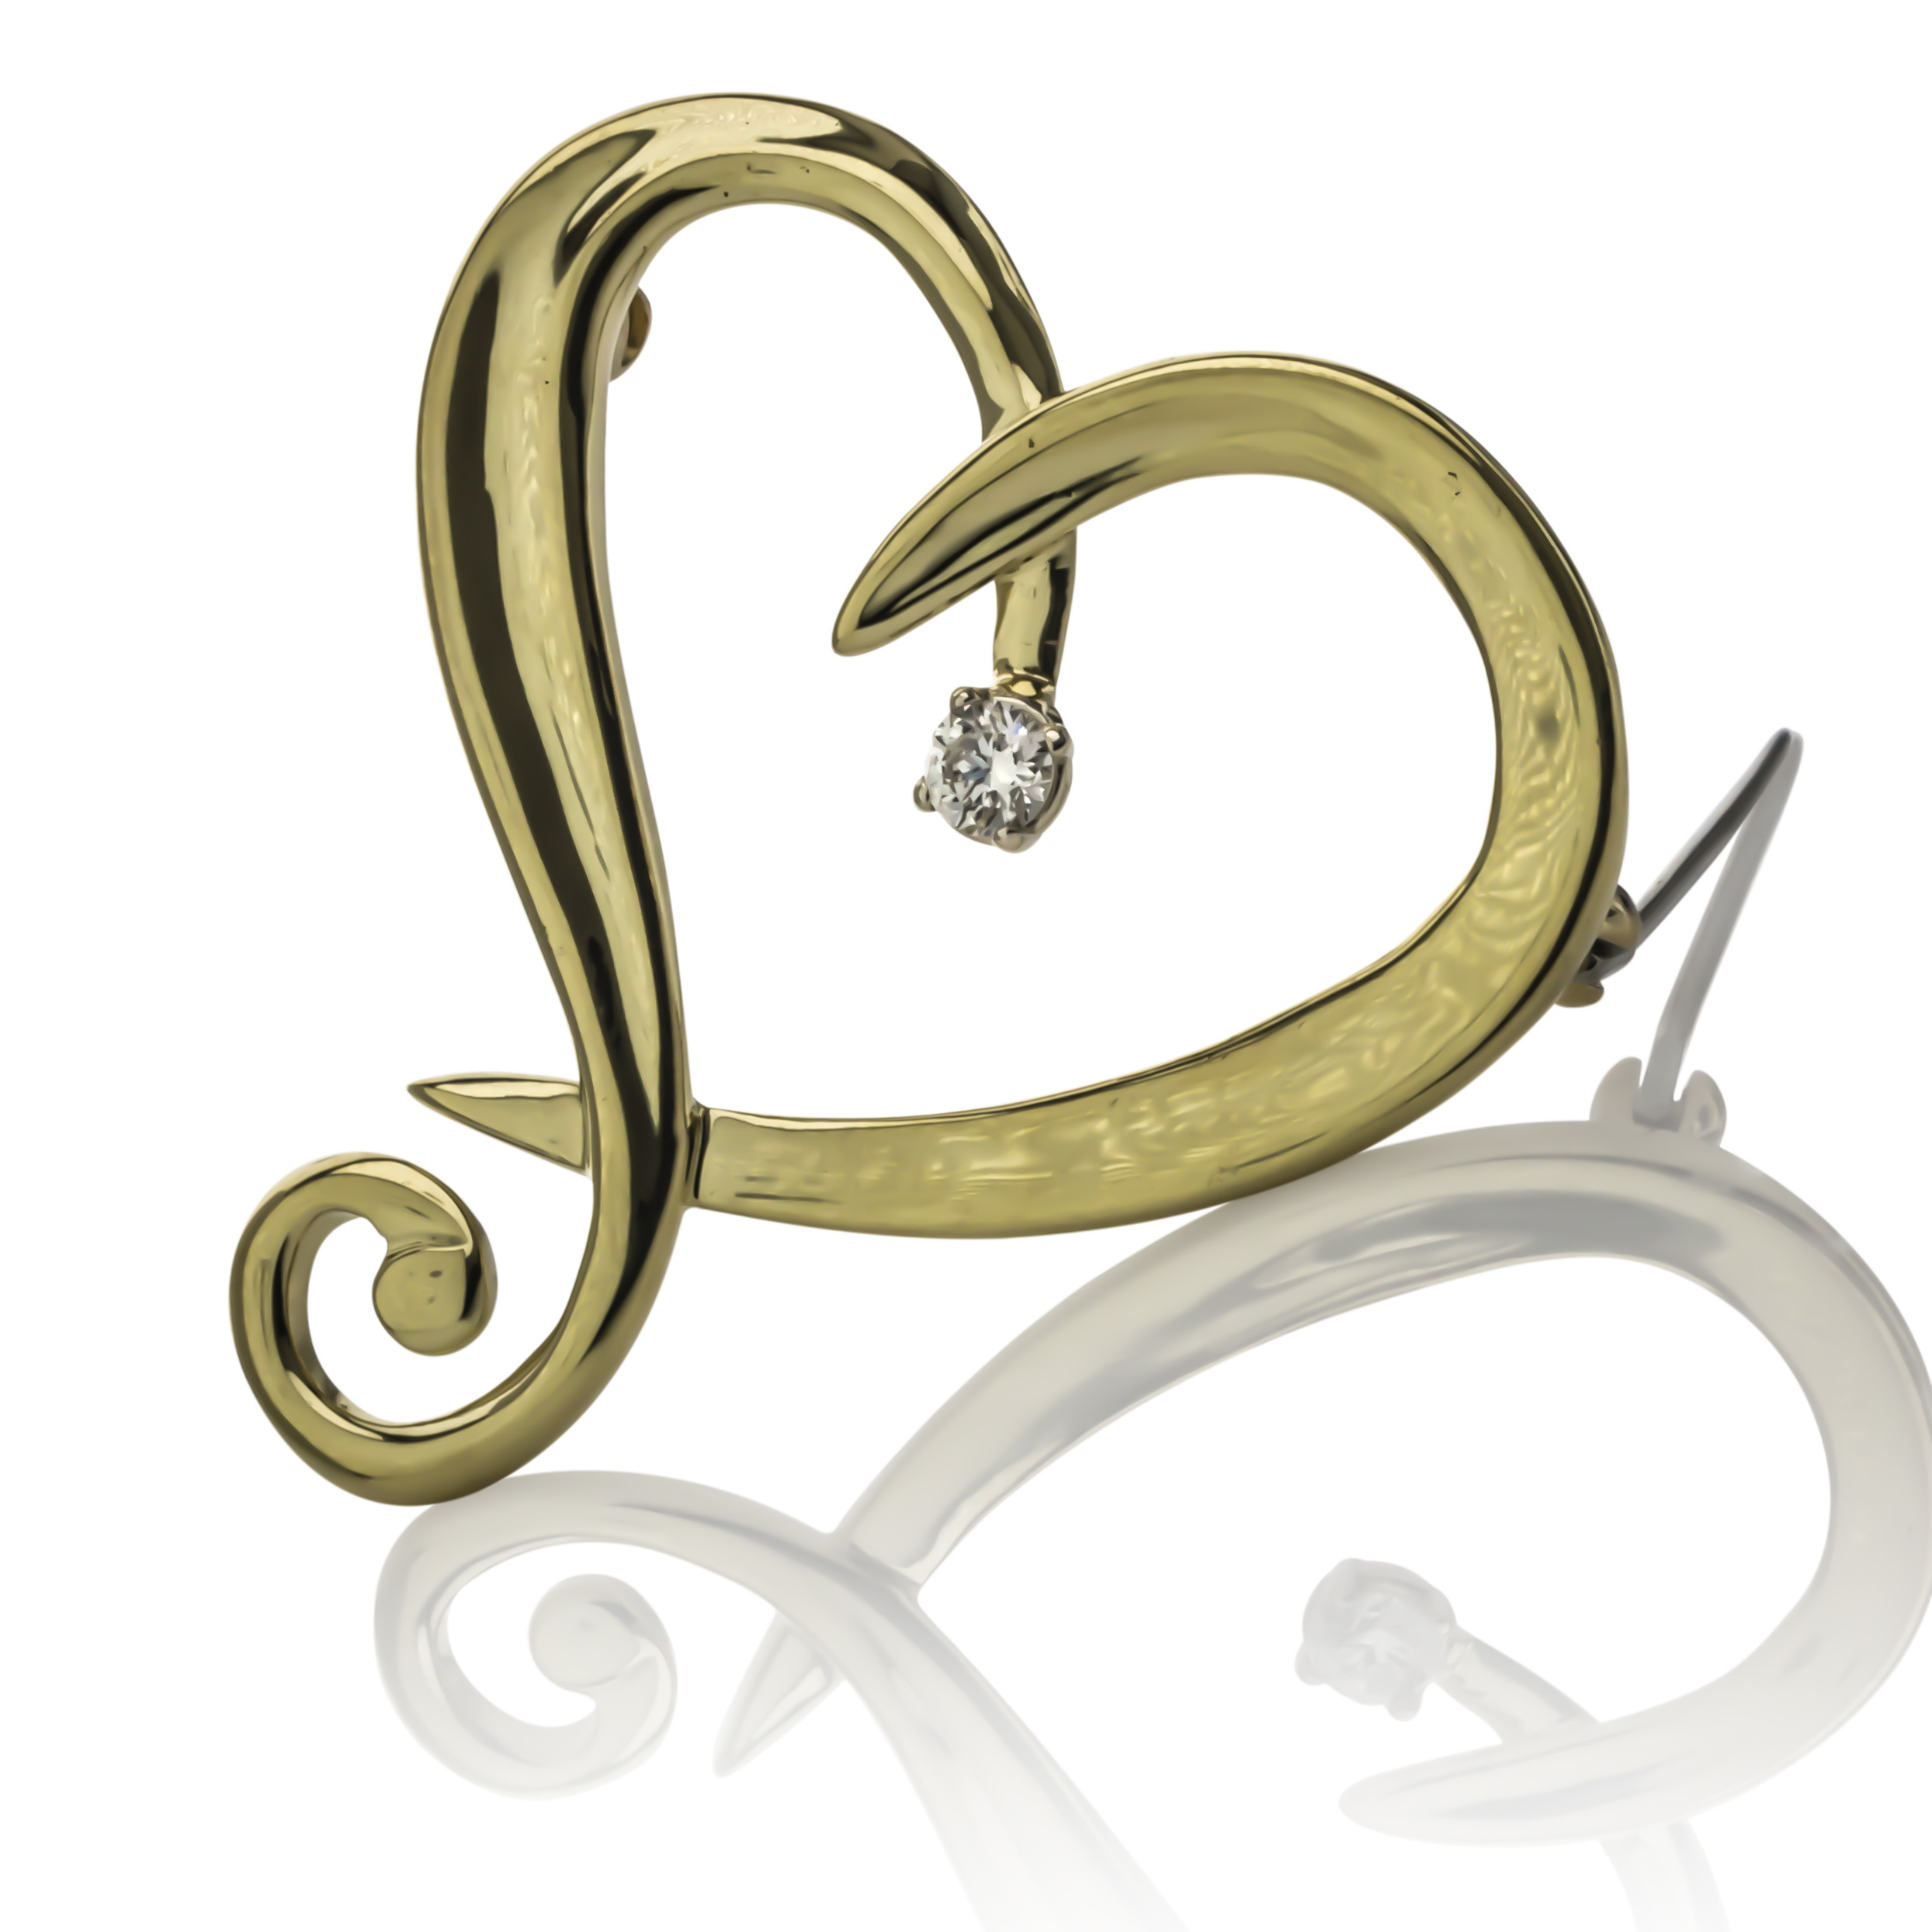 CUSTOM 18K HEART BROOCH WITH DIAMOND ACCENT